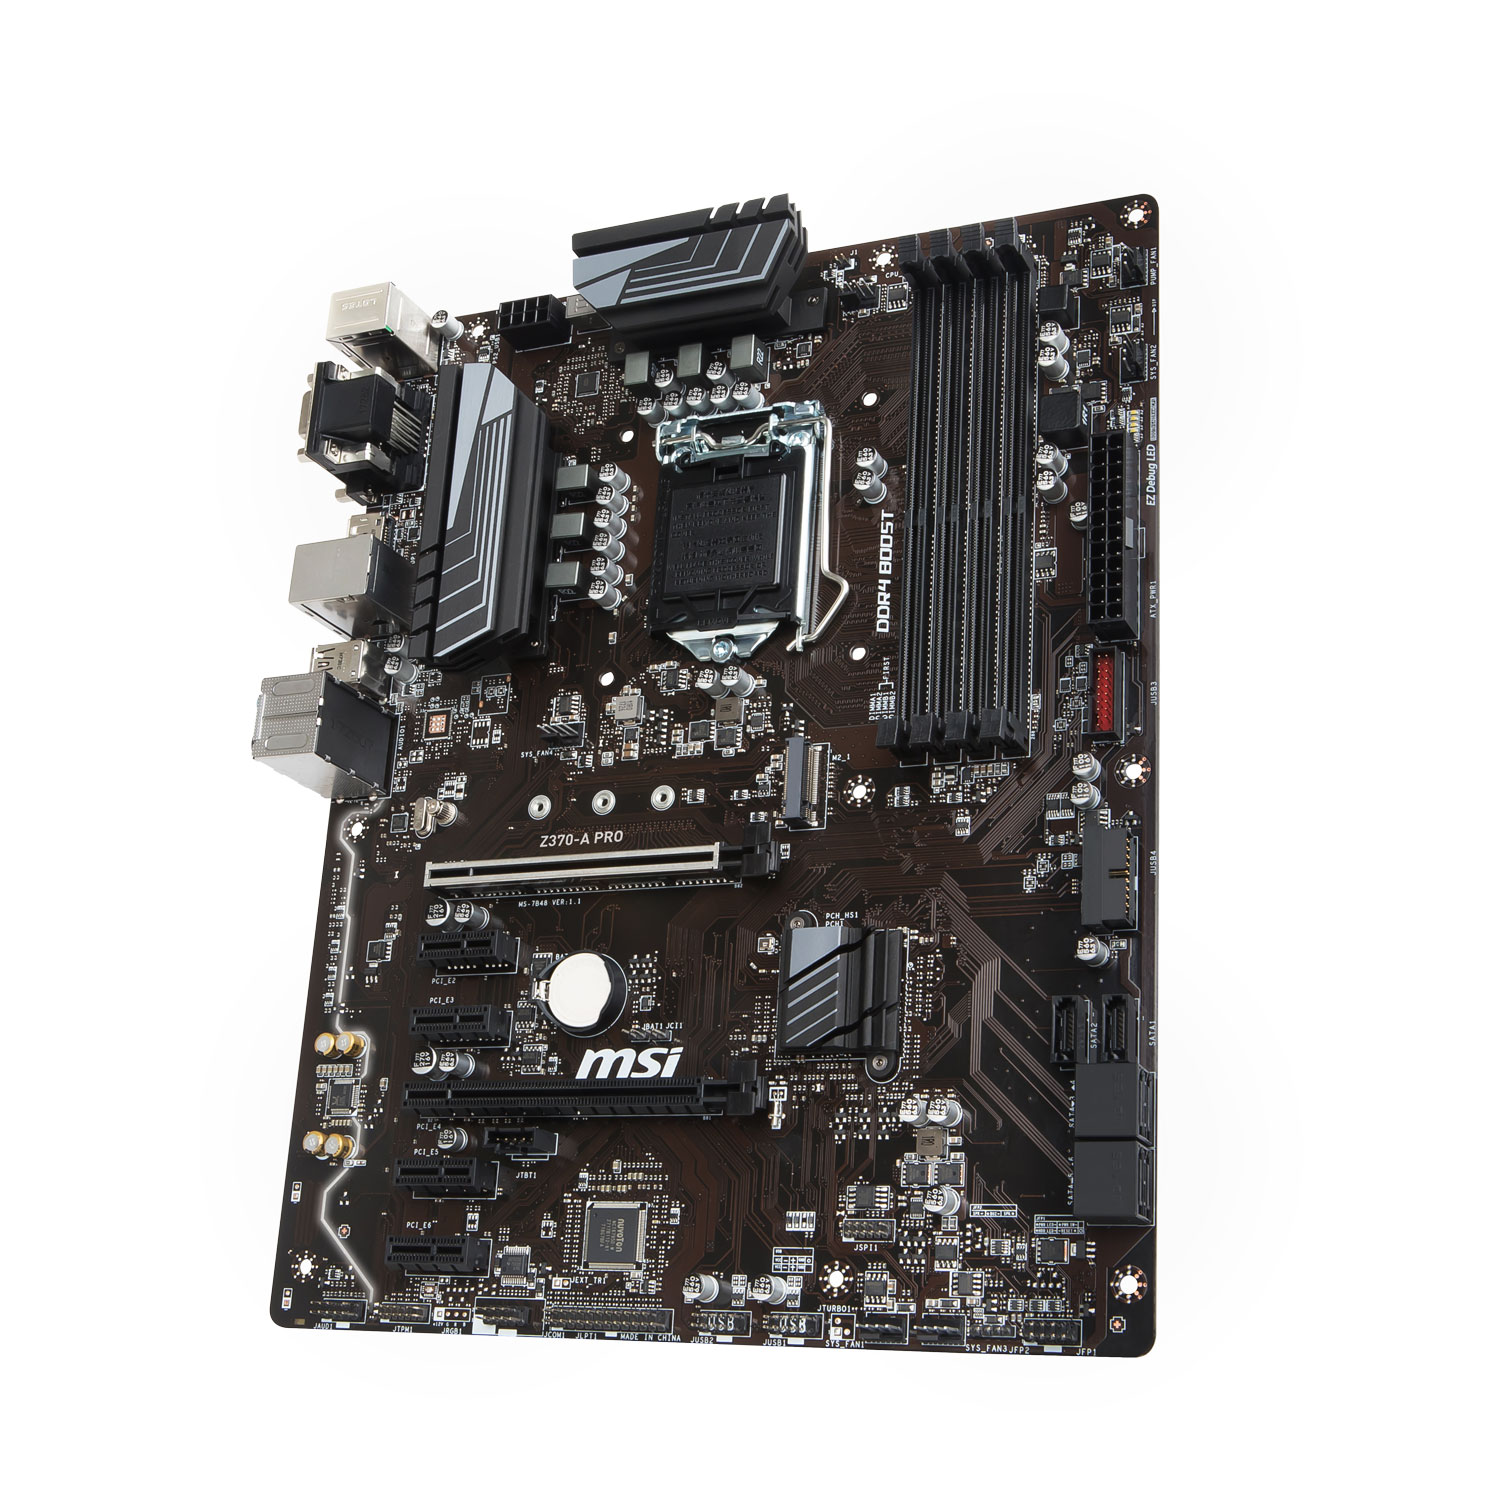 Carte mère MSI Z370-A Pro Socket 1151 (Intel Z370 Express) ATX, informatique ile de la Réunion 974